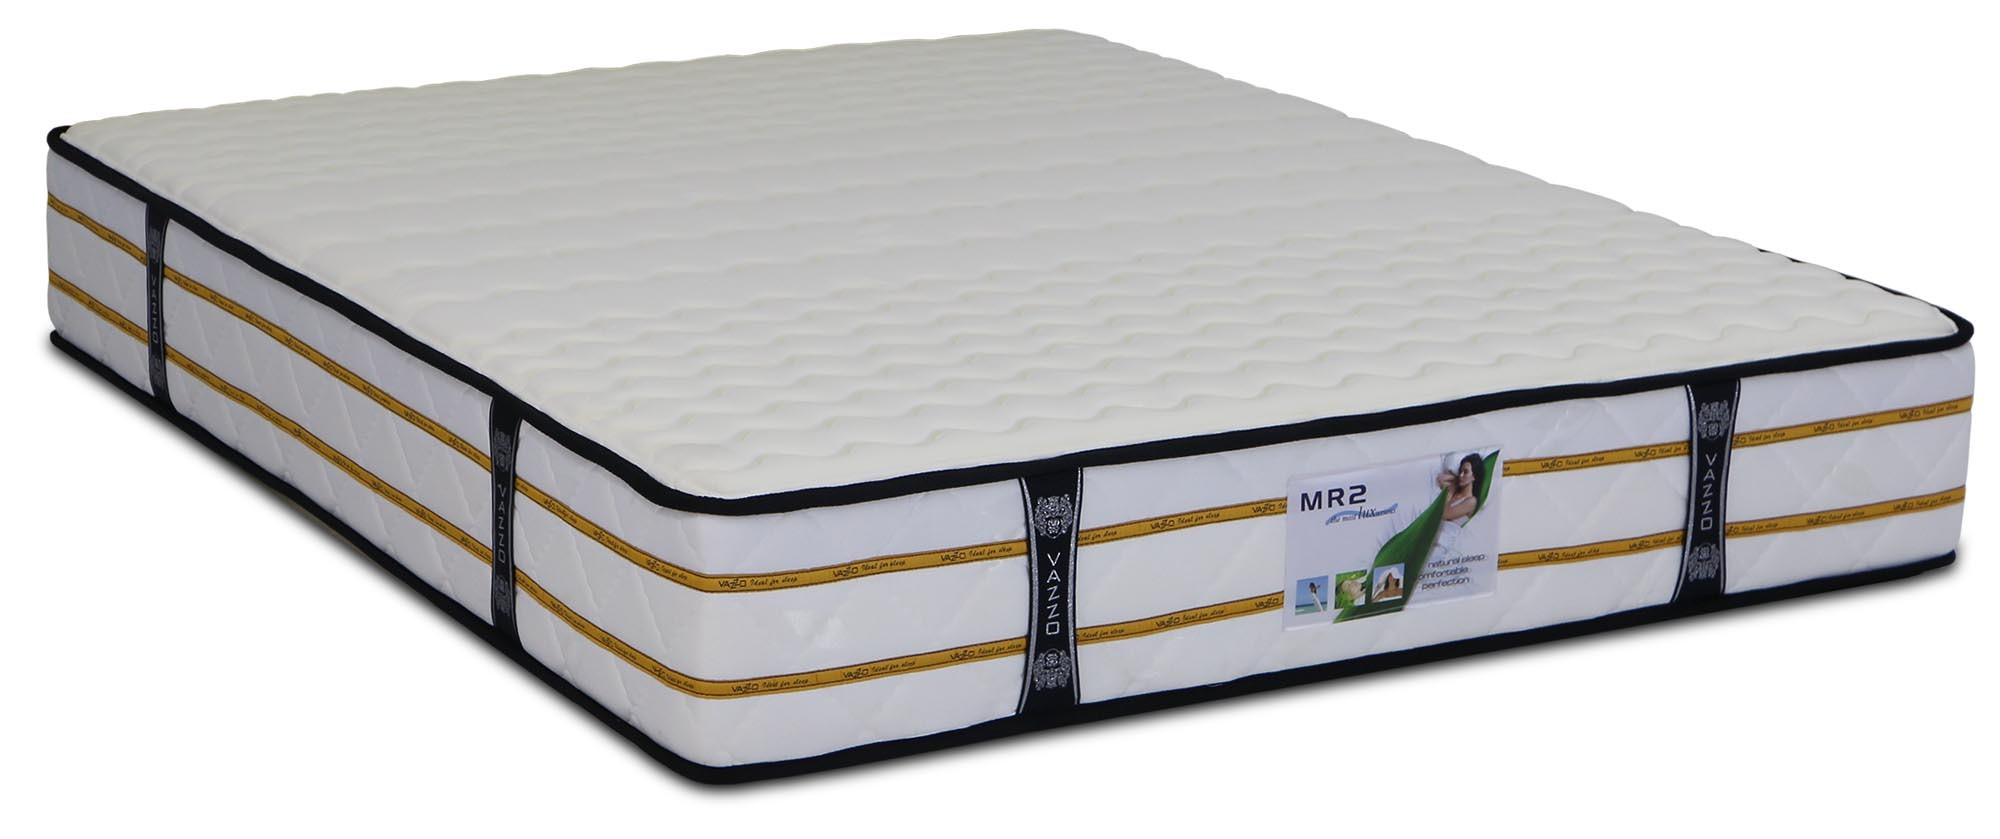 hight resolution of vazzo mr2 trizone individual pocketed spring mattress